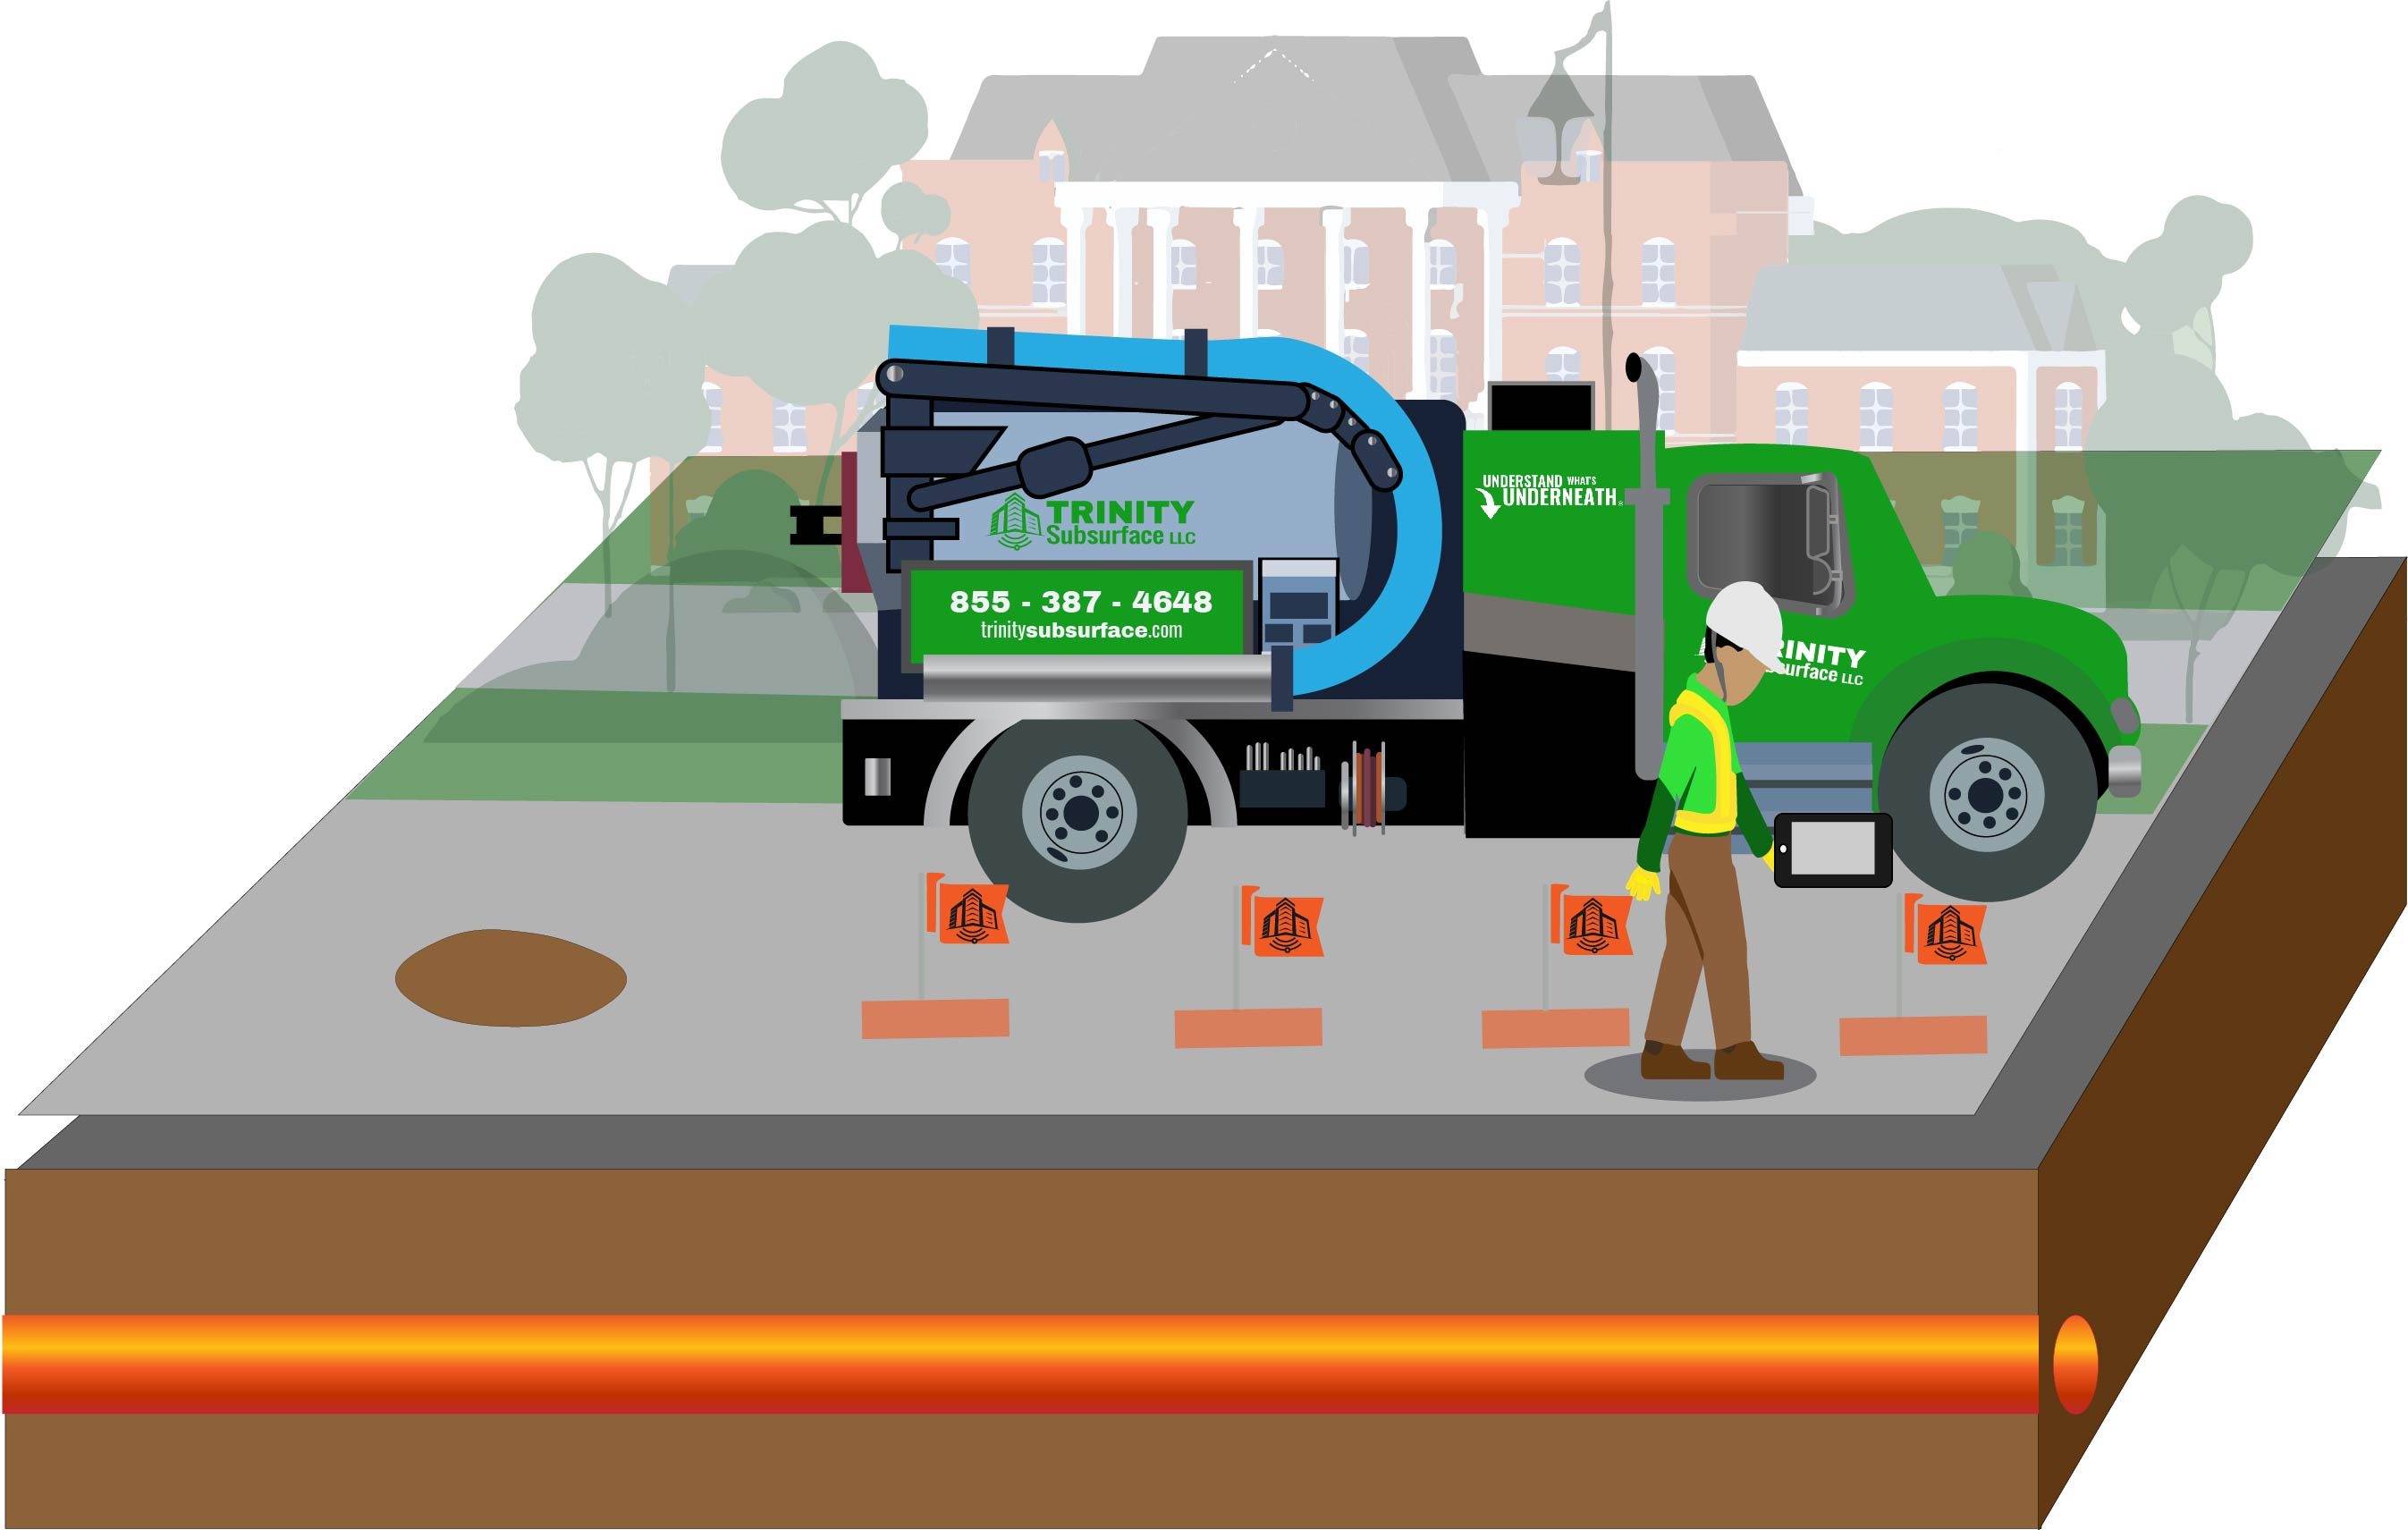 vacuum excavation diagram step refill and map with survey-grade documentation